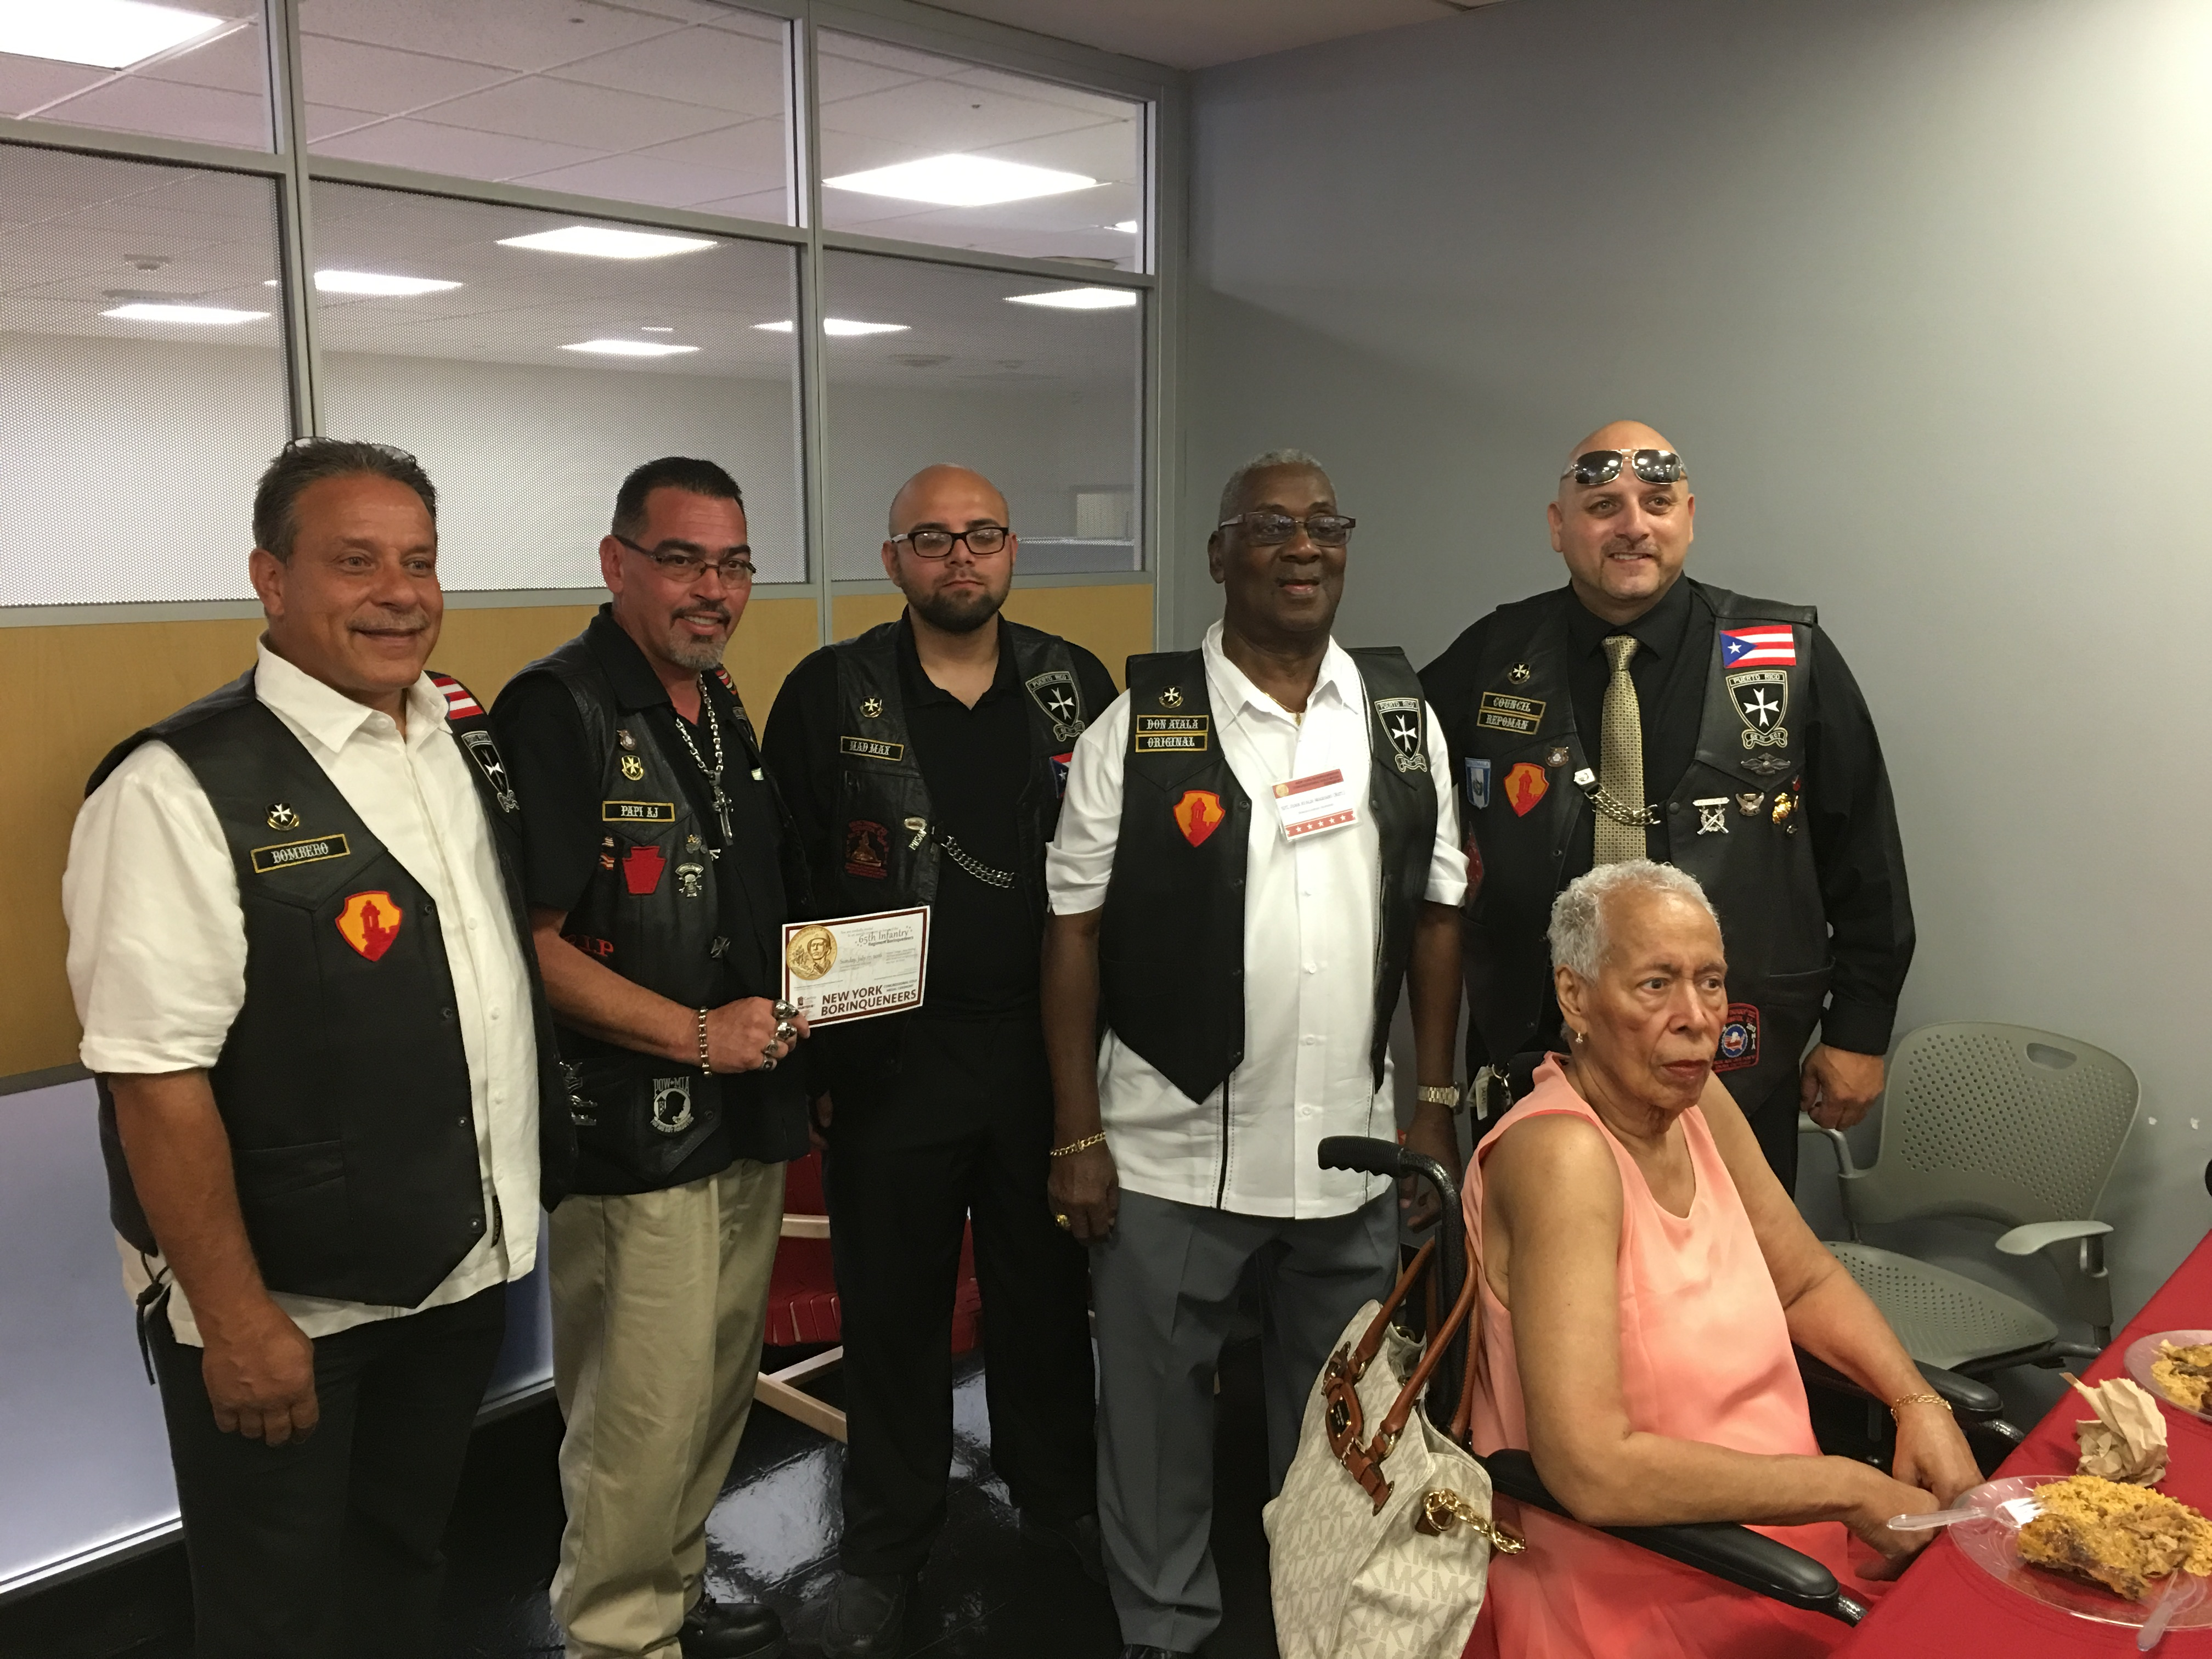 New York Jersey And Penna Members Of The Borinqueneers 65th Infantry Regiment MC